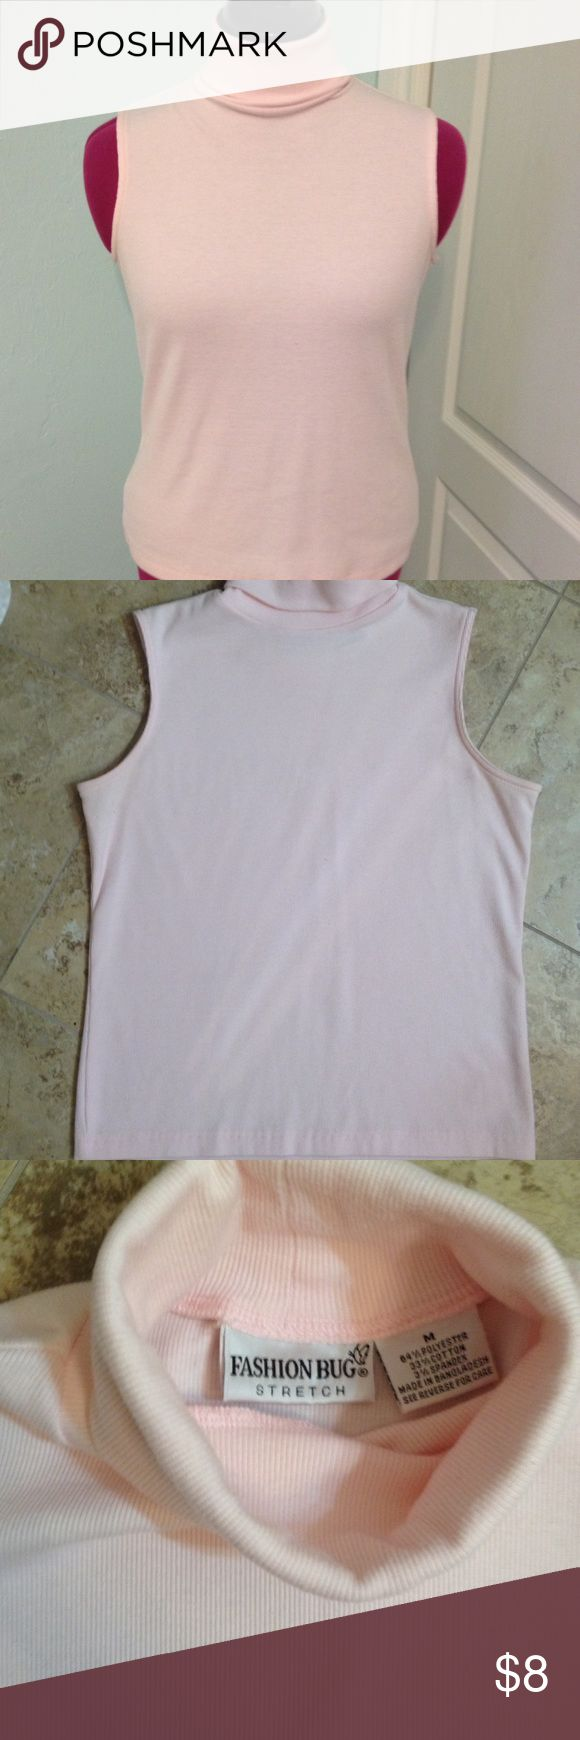 Pink Sleeveless Turtleneck This is a light pink sleeveless turtleneck top, it's a Size M. In great condition. Fashion Bug Tops Tank Tops